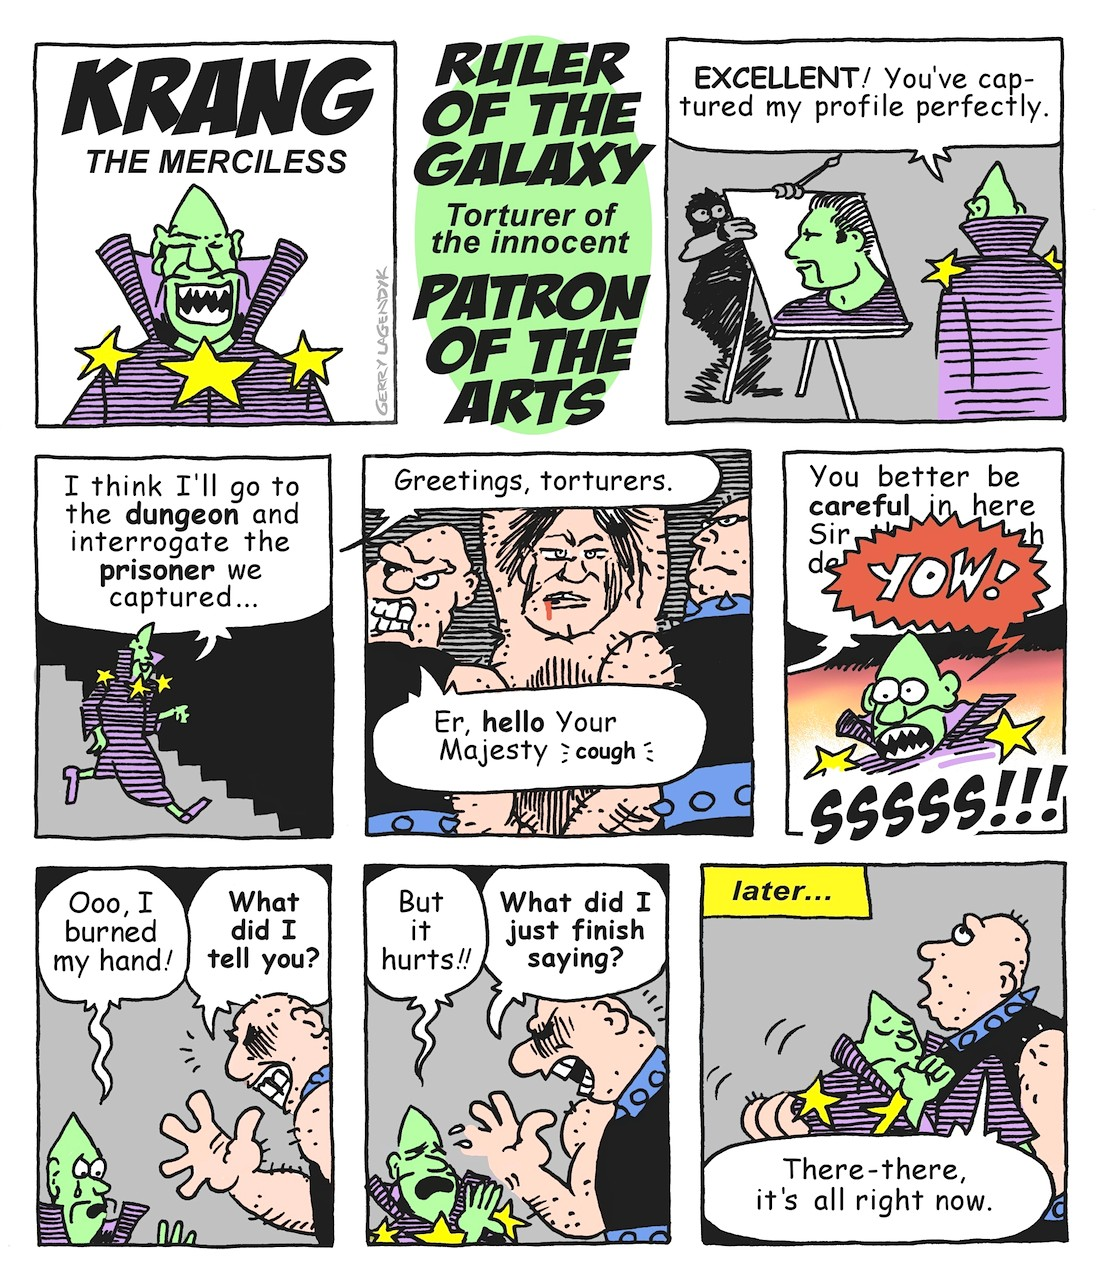 Krang the Merciless, a cartoon by Lagendyk